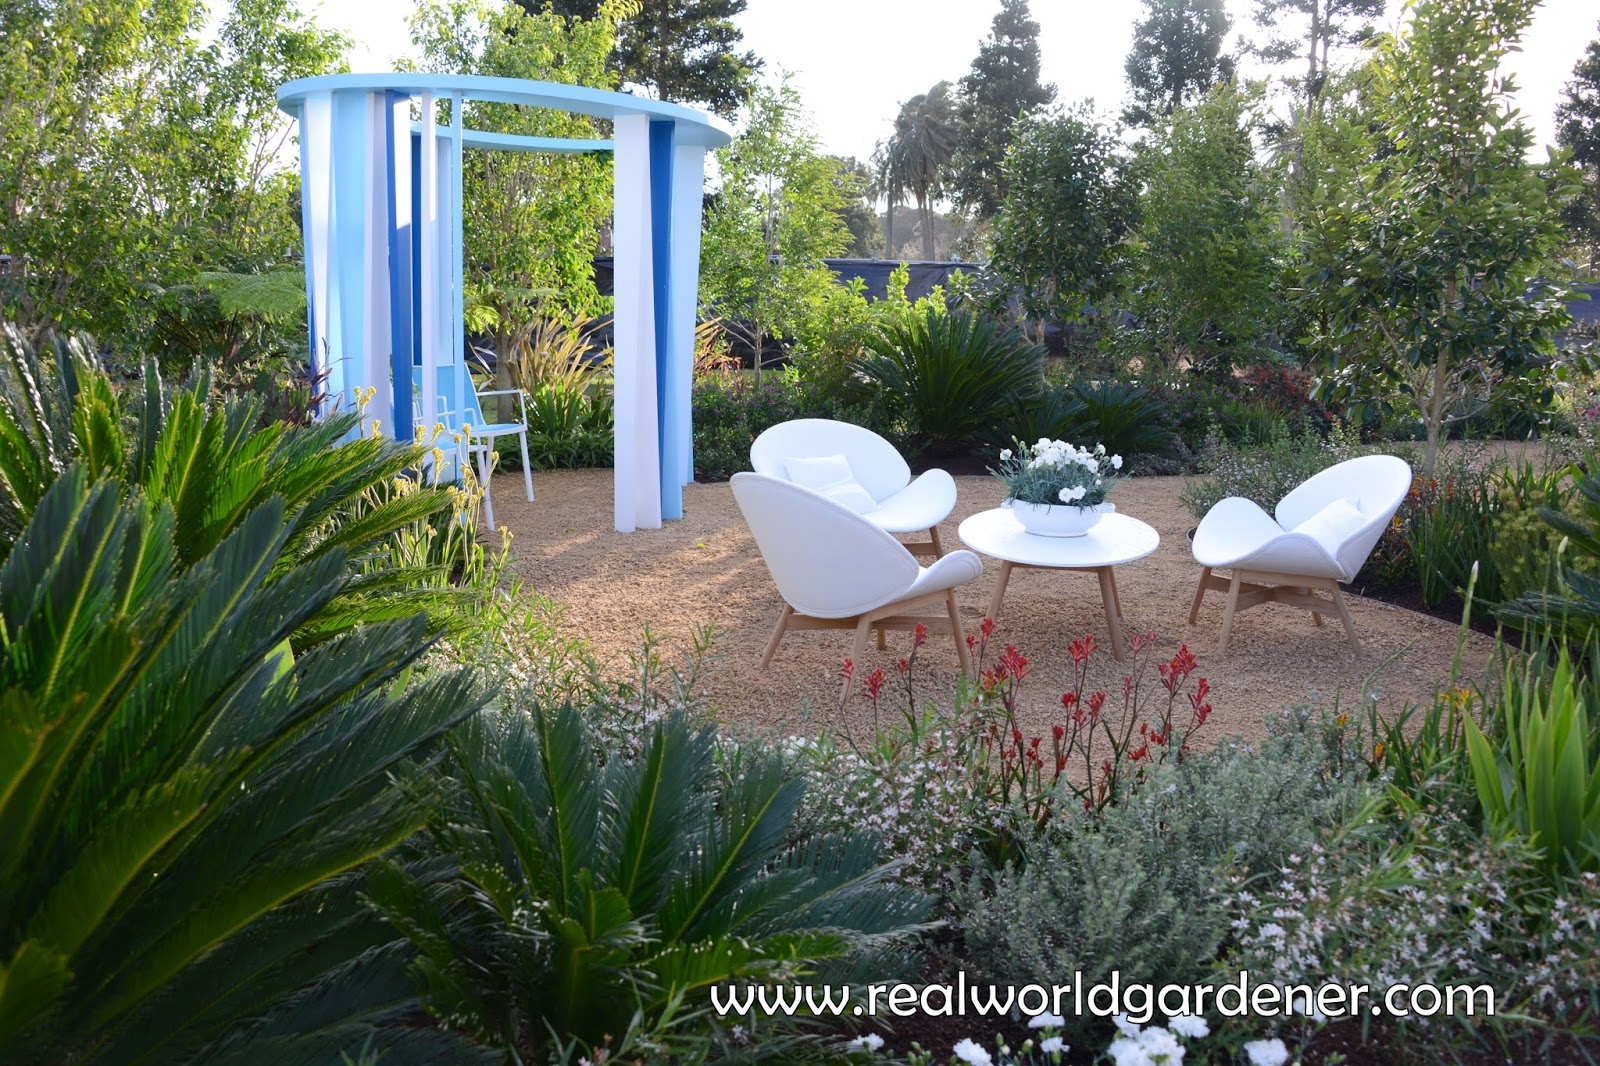 Real world gardener creating contemporary gardens part 1 for Garden design podcast